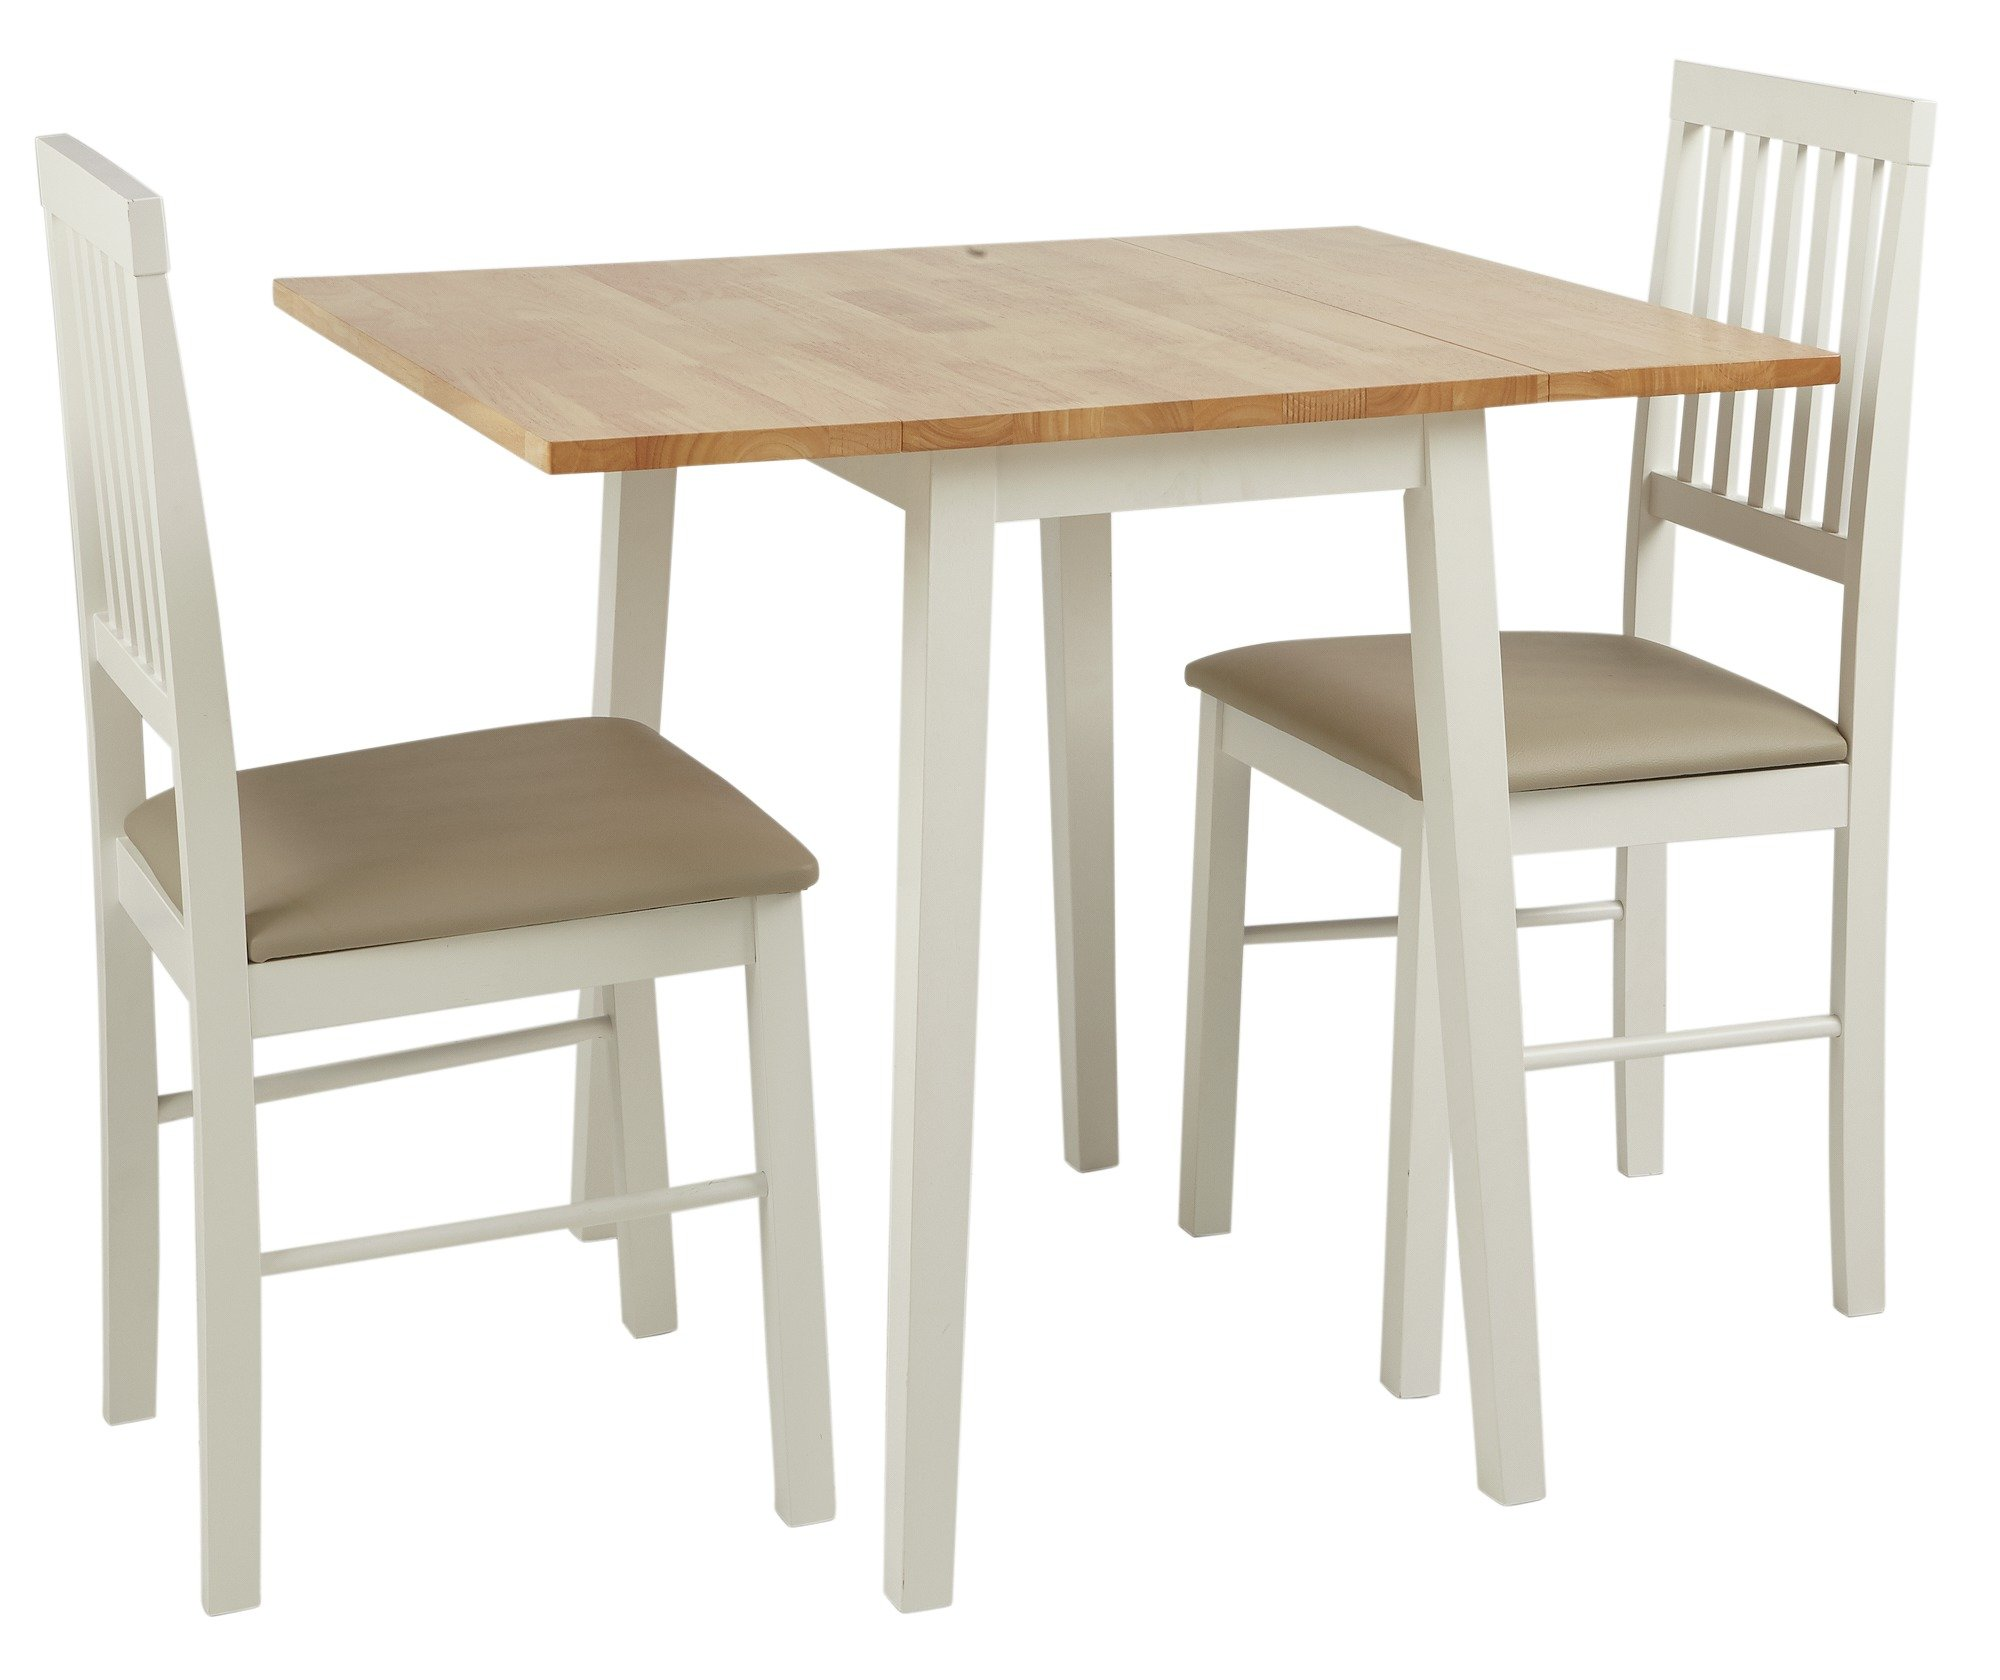 table 2 chairs. click to zoom table 2 chairs d